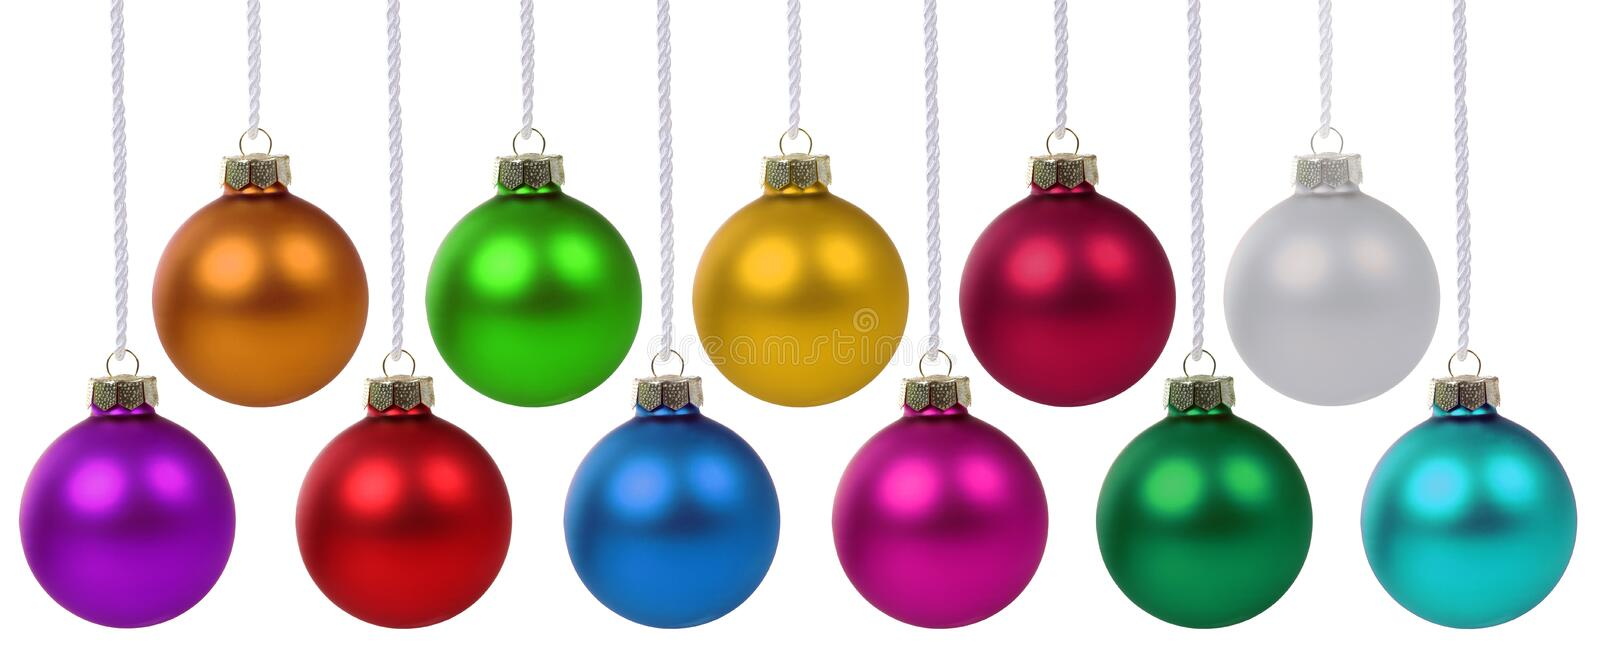 Christmas balls baubles many colorful decoration deco hanging stock photography